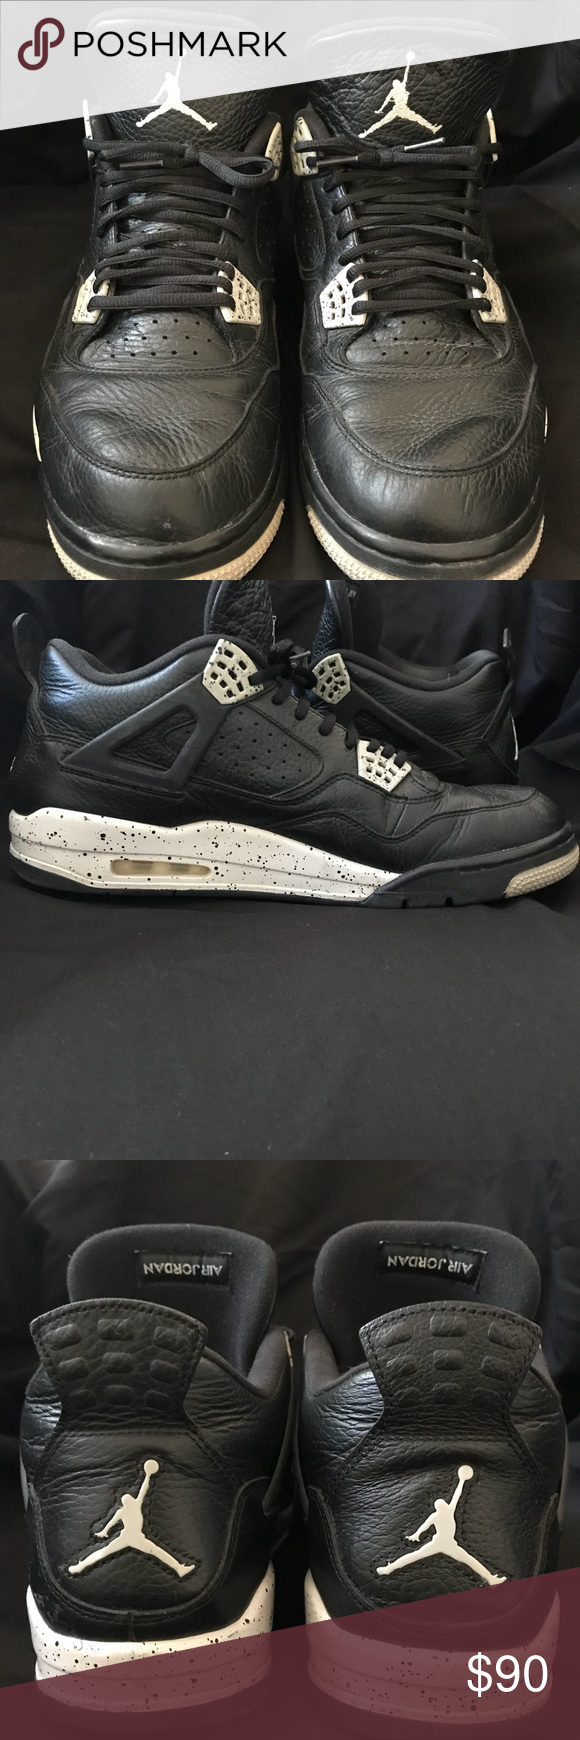 ee2241d29814 Nike Air Jordan IV 4 Retro Oreo Tech Grey Size 13 After years of its  original